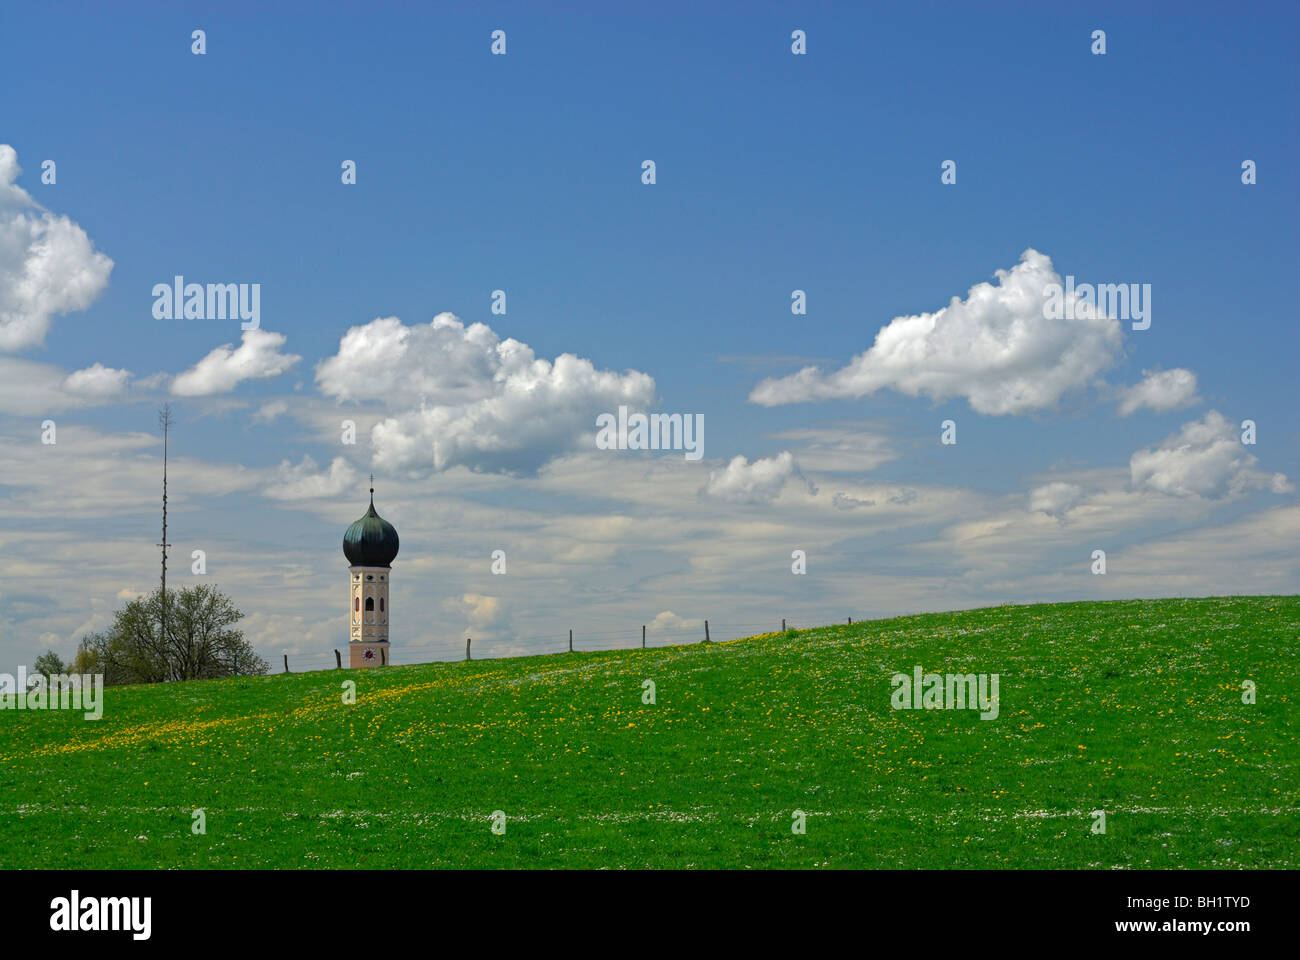 sea of dandelion and spire, onion-shaped dome, Upper Bavaria, Bavaria, Germany - Stock Image